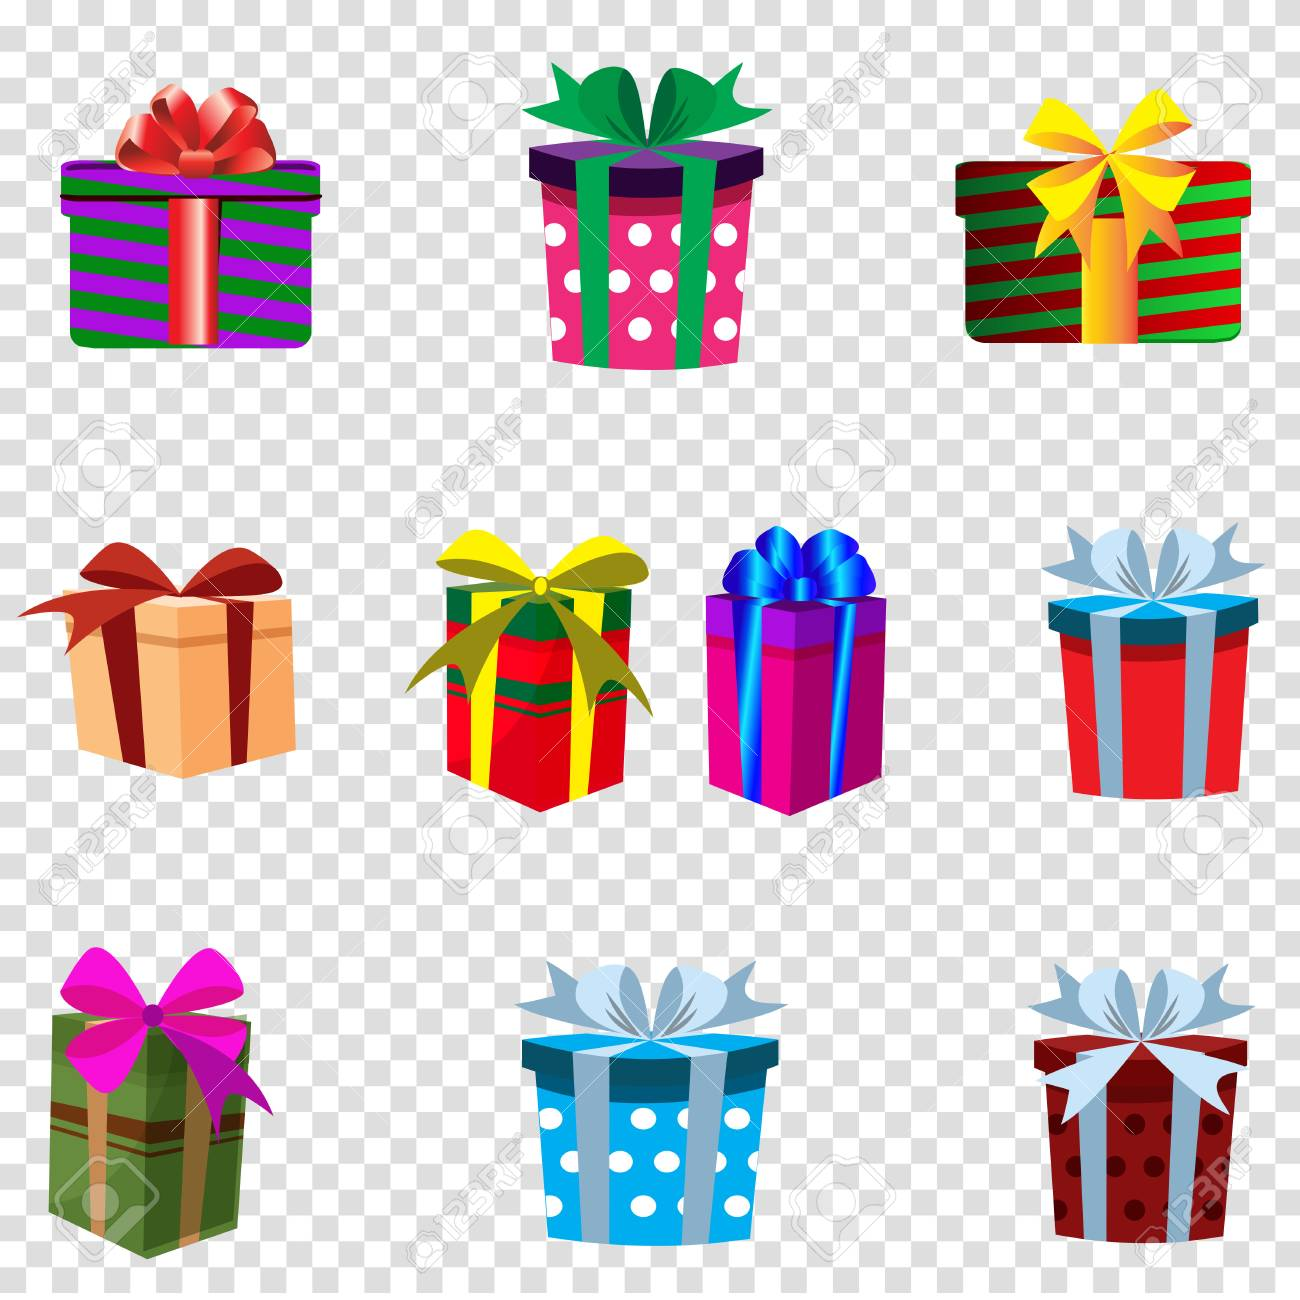 Vector Set Of Colourful Gift Boxes Isolated On Transparent Background Christmas New Year Valentine Birthday Festive Icons Clip Art Presents Decorated By Ribbons And Bows Greeting Card Template Royalty Free Cliparts Vectors